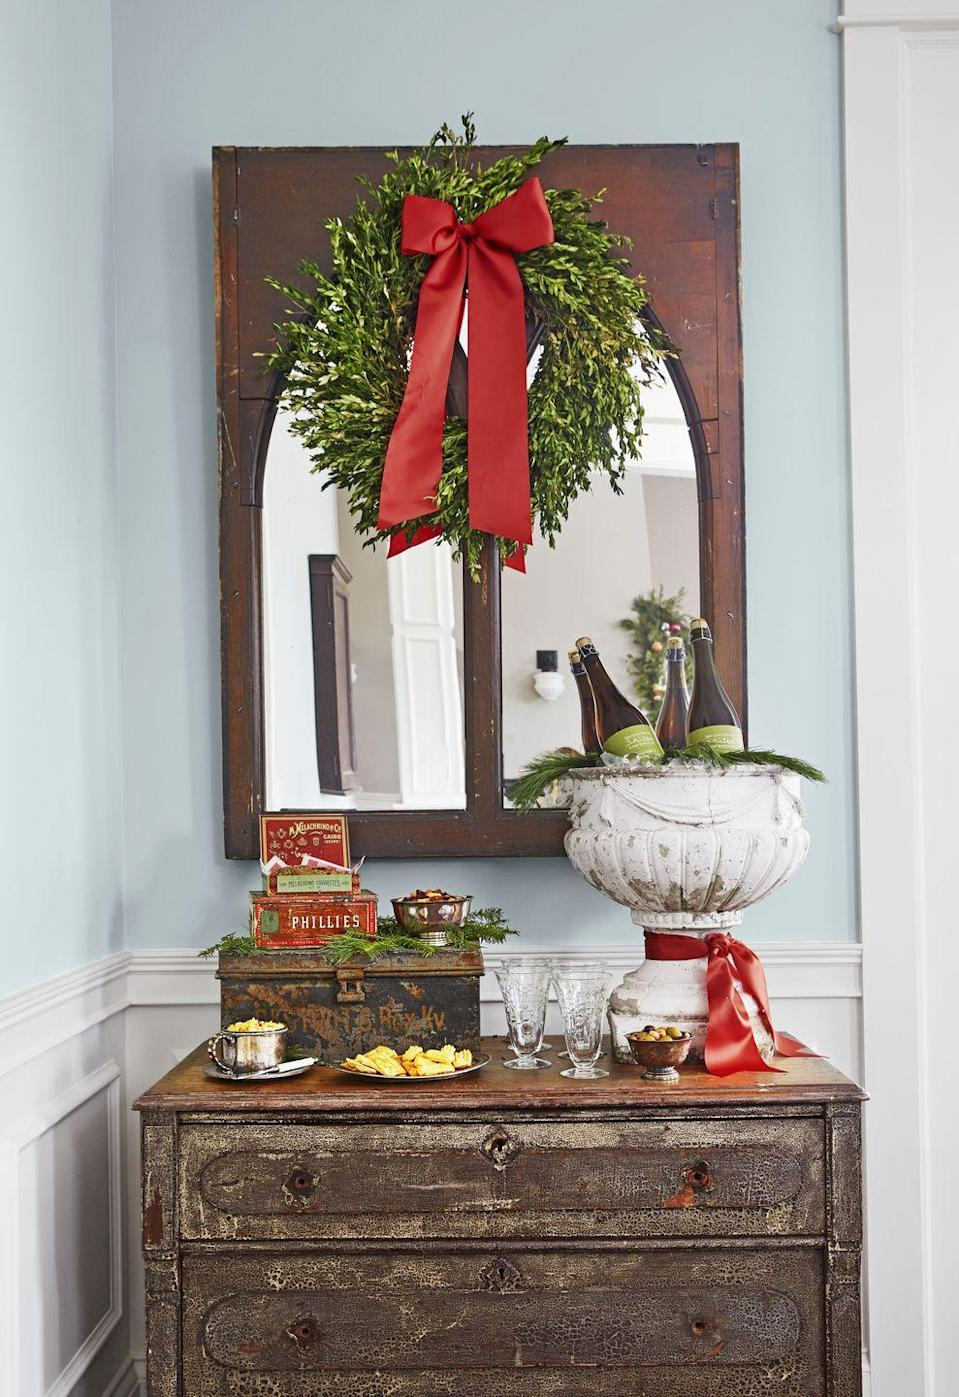 """<p>While <a href=""""https://www.countryliving.com/diy-crafts/how-to/g1056/diy-wreath-ideas/"""" rel=""""nofollow noopener"""" target=""""_blank"""" data-ylk=""""slk:wreaths"""" class=""""link rapid-noclick-resp"""">wreaths</a> are the go-to decoration for front doors and mantels, they're also the perfect piece to hang over windows, mirrors, and even framed artwork. </p><p><a class=""""link rapid-noclick-resp"""" href=""""https://www.amazon.com/Tradingsmith-Preserved-Boxwood-Wreath-12/dp/B01CF8YZSM/?tag=syn-yahoo-20&ascsubtag=%5Bartid%7C10050.g.1247%5Bsrc%7Cyahoo-us"""" rel=""""nofollow noopener"""" target=""""_blank"""" data-ylk=""""slk:SHOP BOXWOOD WREATHS"""">SHOP BOXWOOD WREATHS</a></p>"""